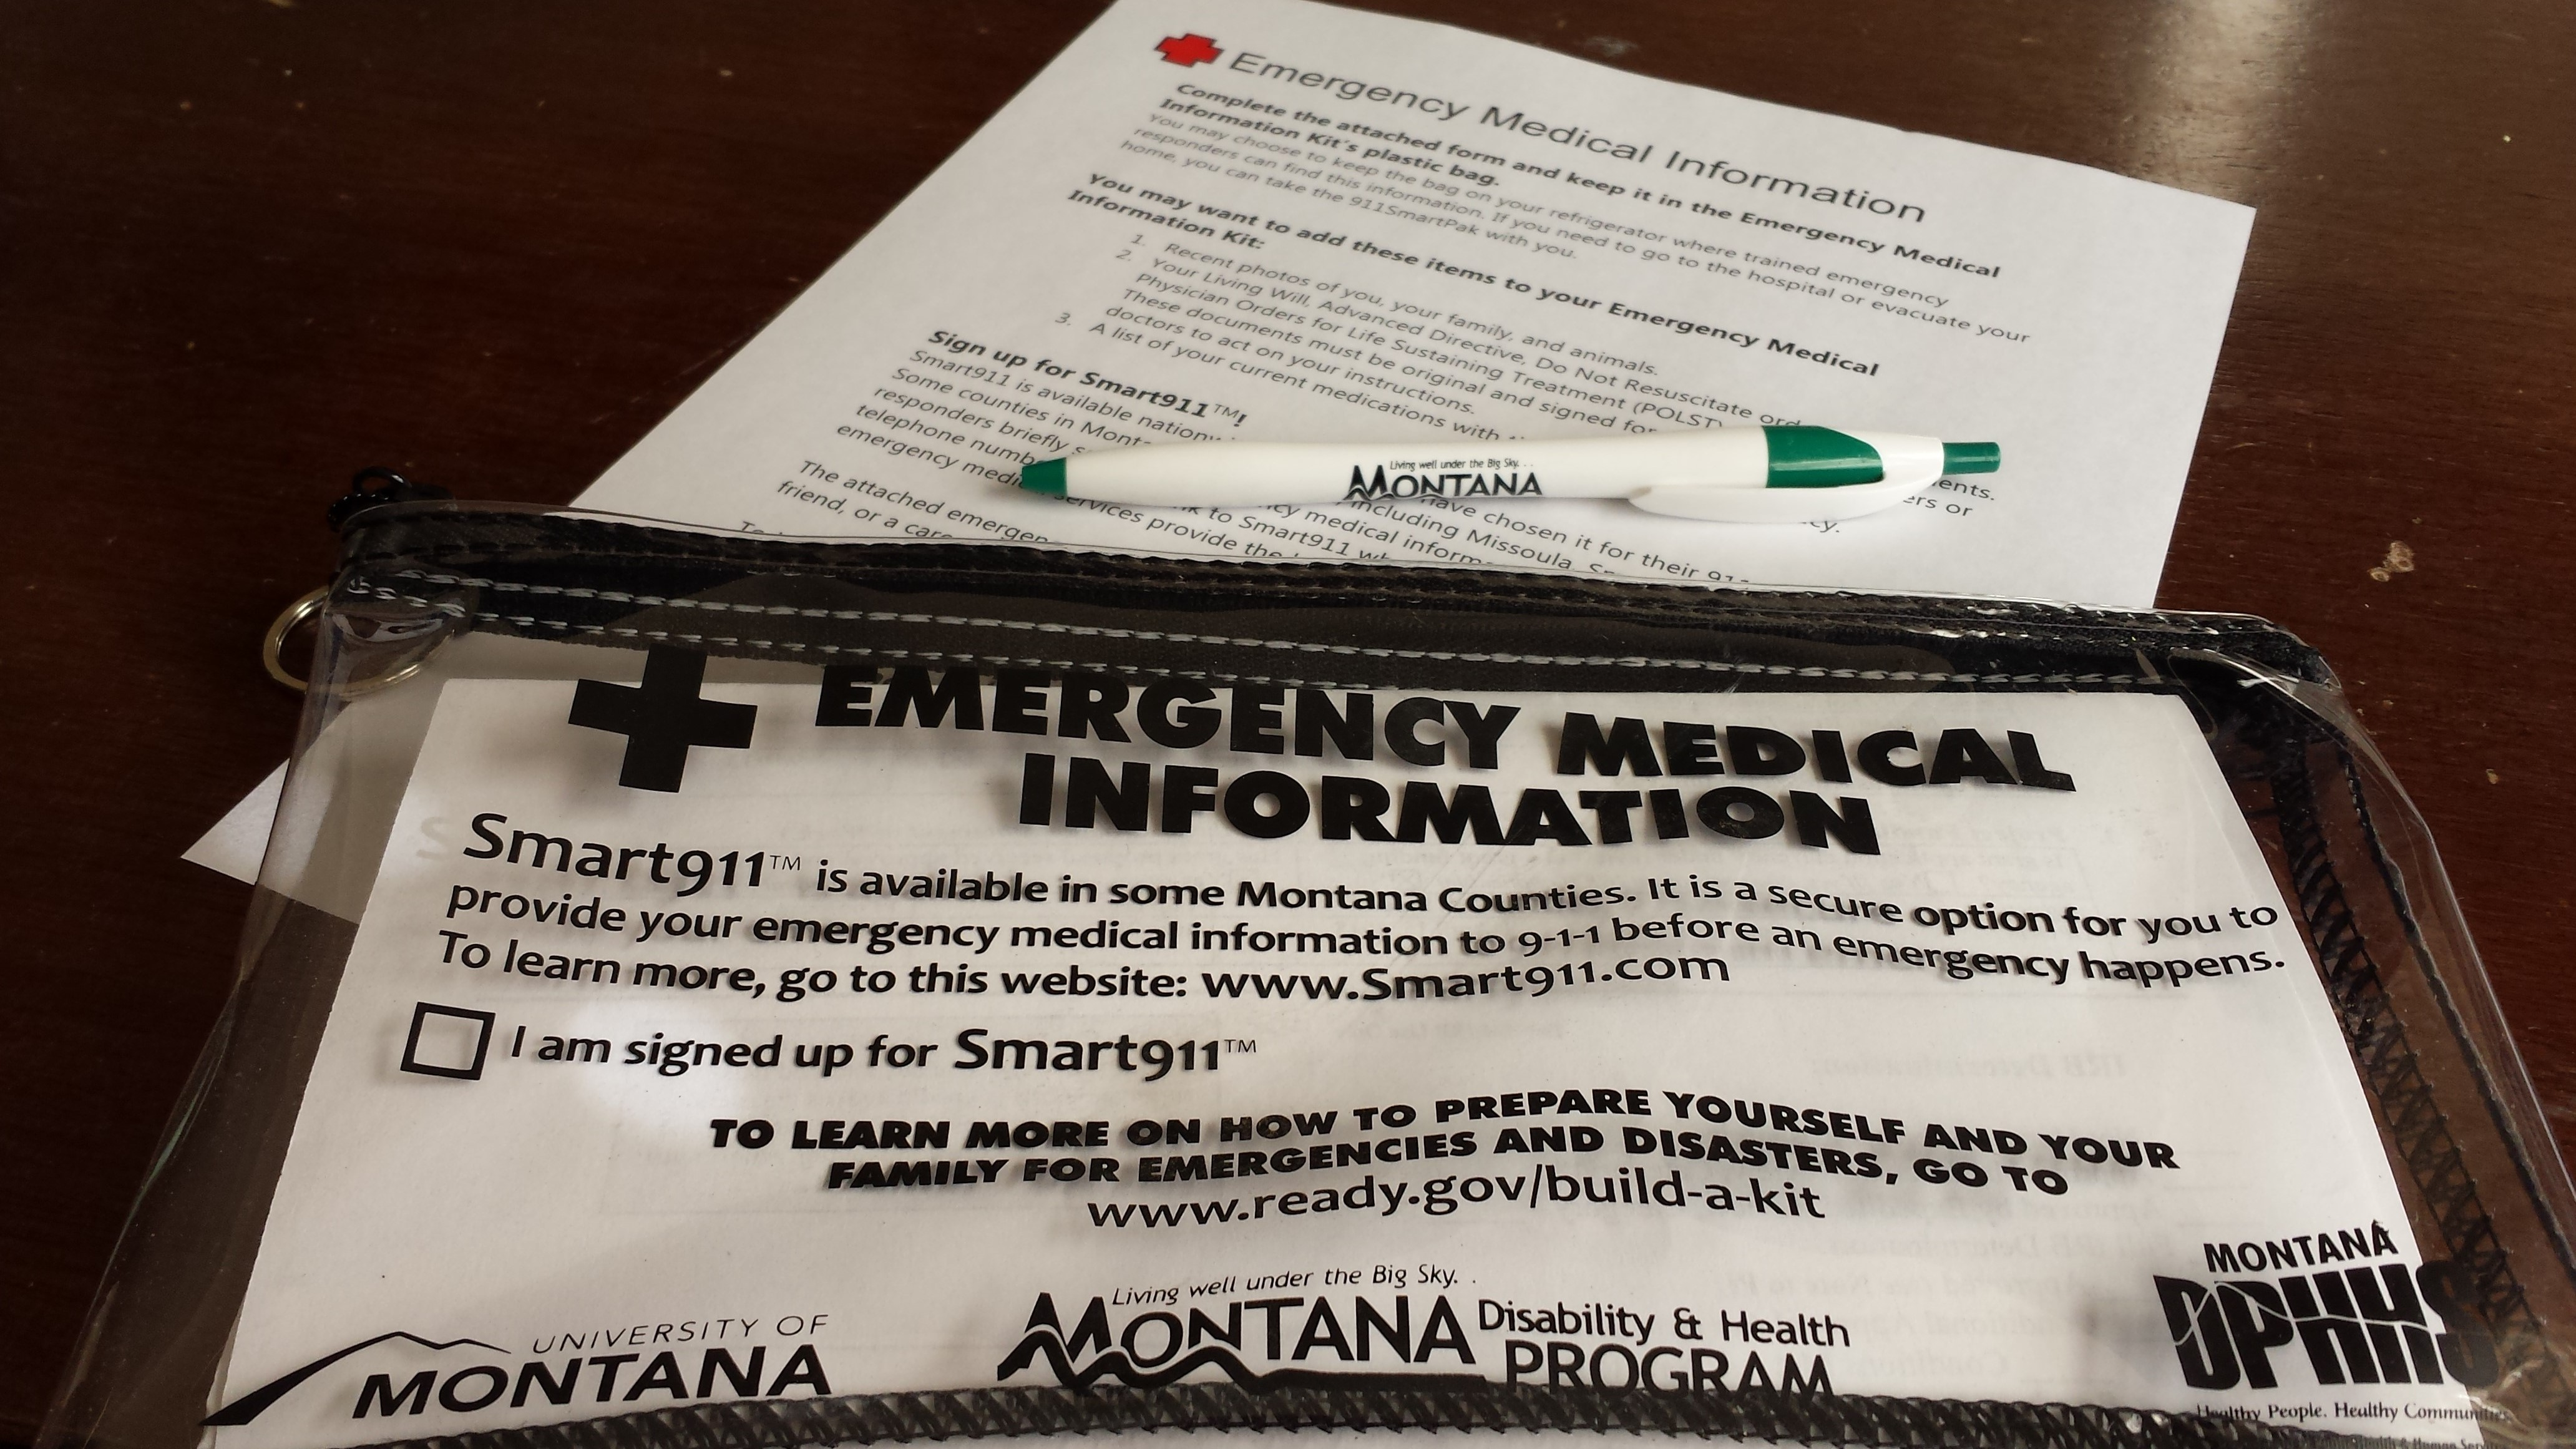 mtdh and partner developed emergency preparedness tools and